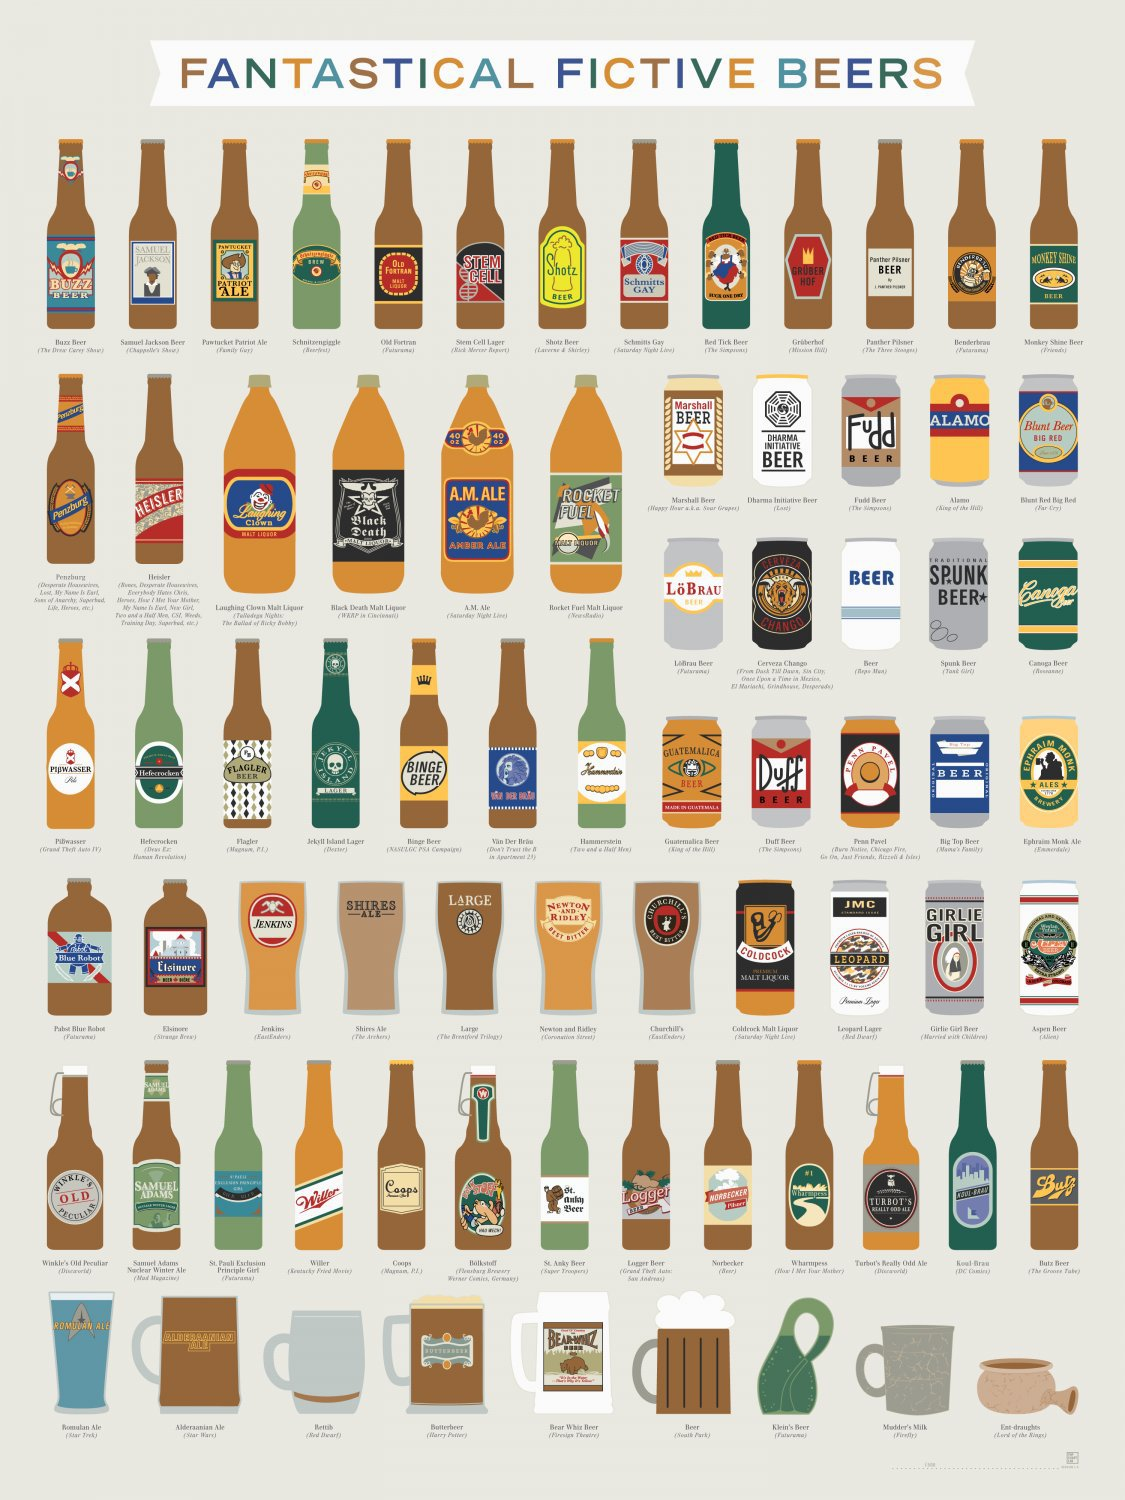 Fantastical Fictive Beers Chart  18x28 inches Canvas Print